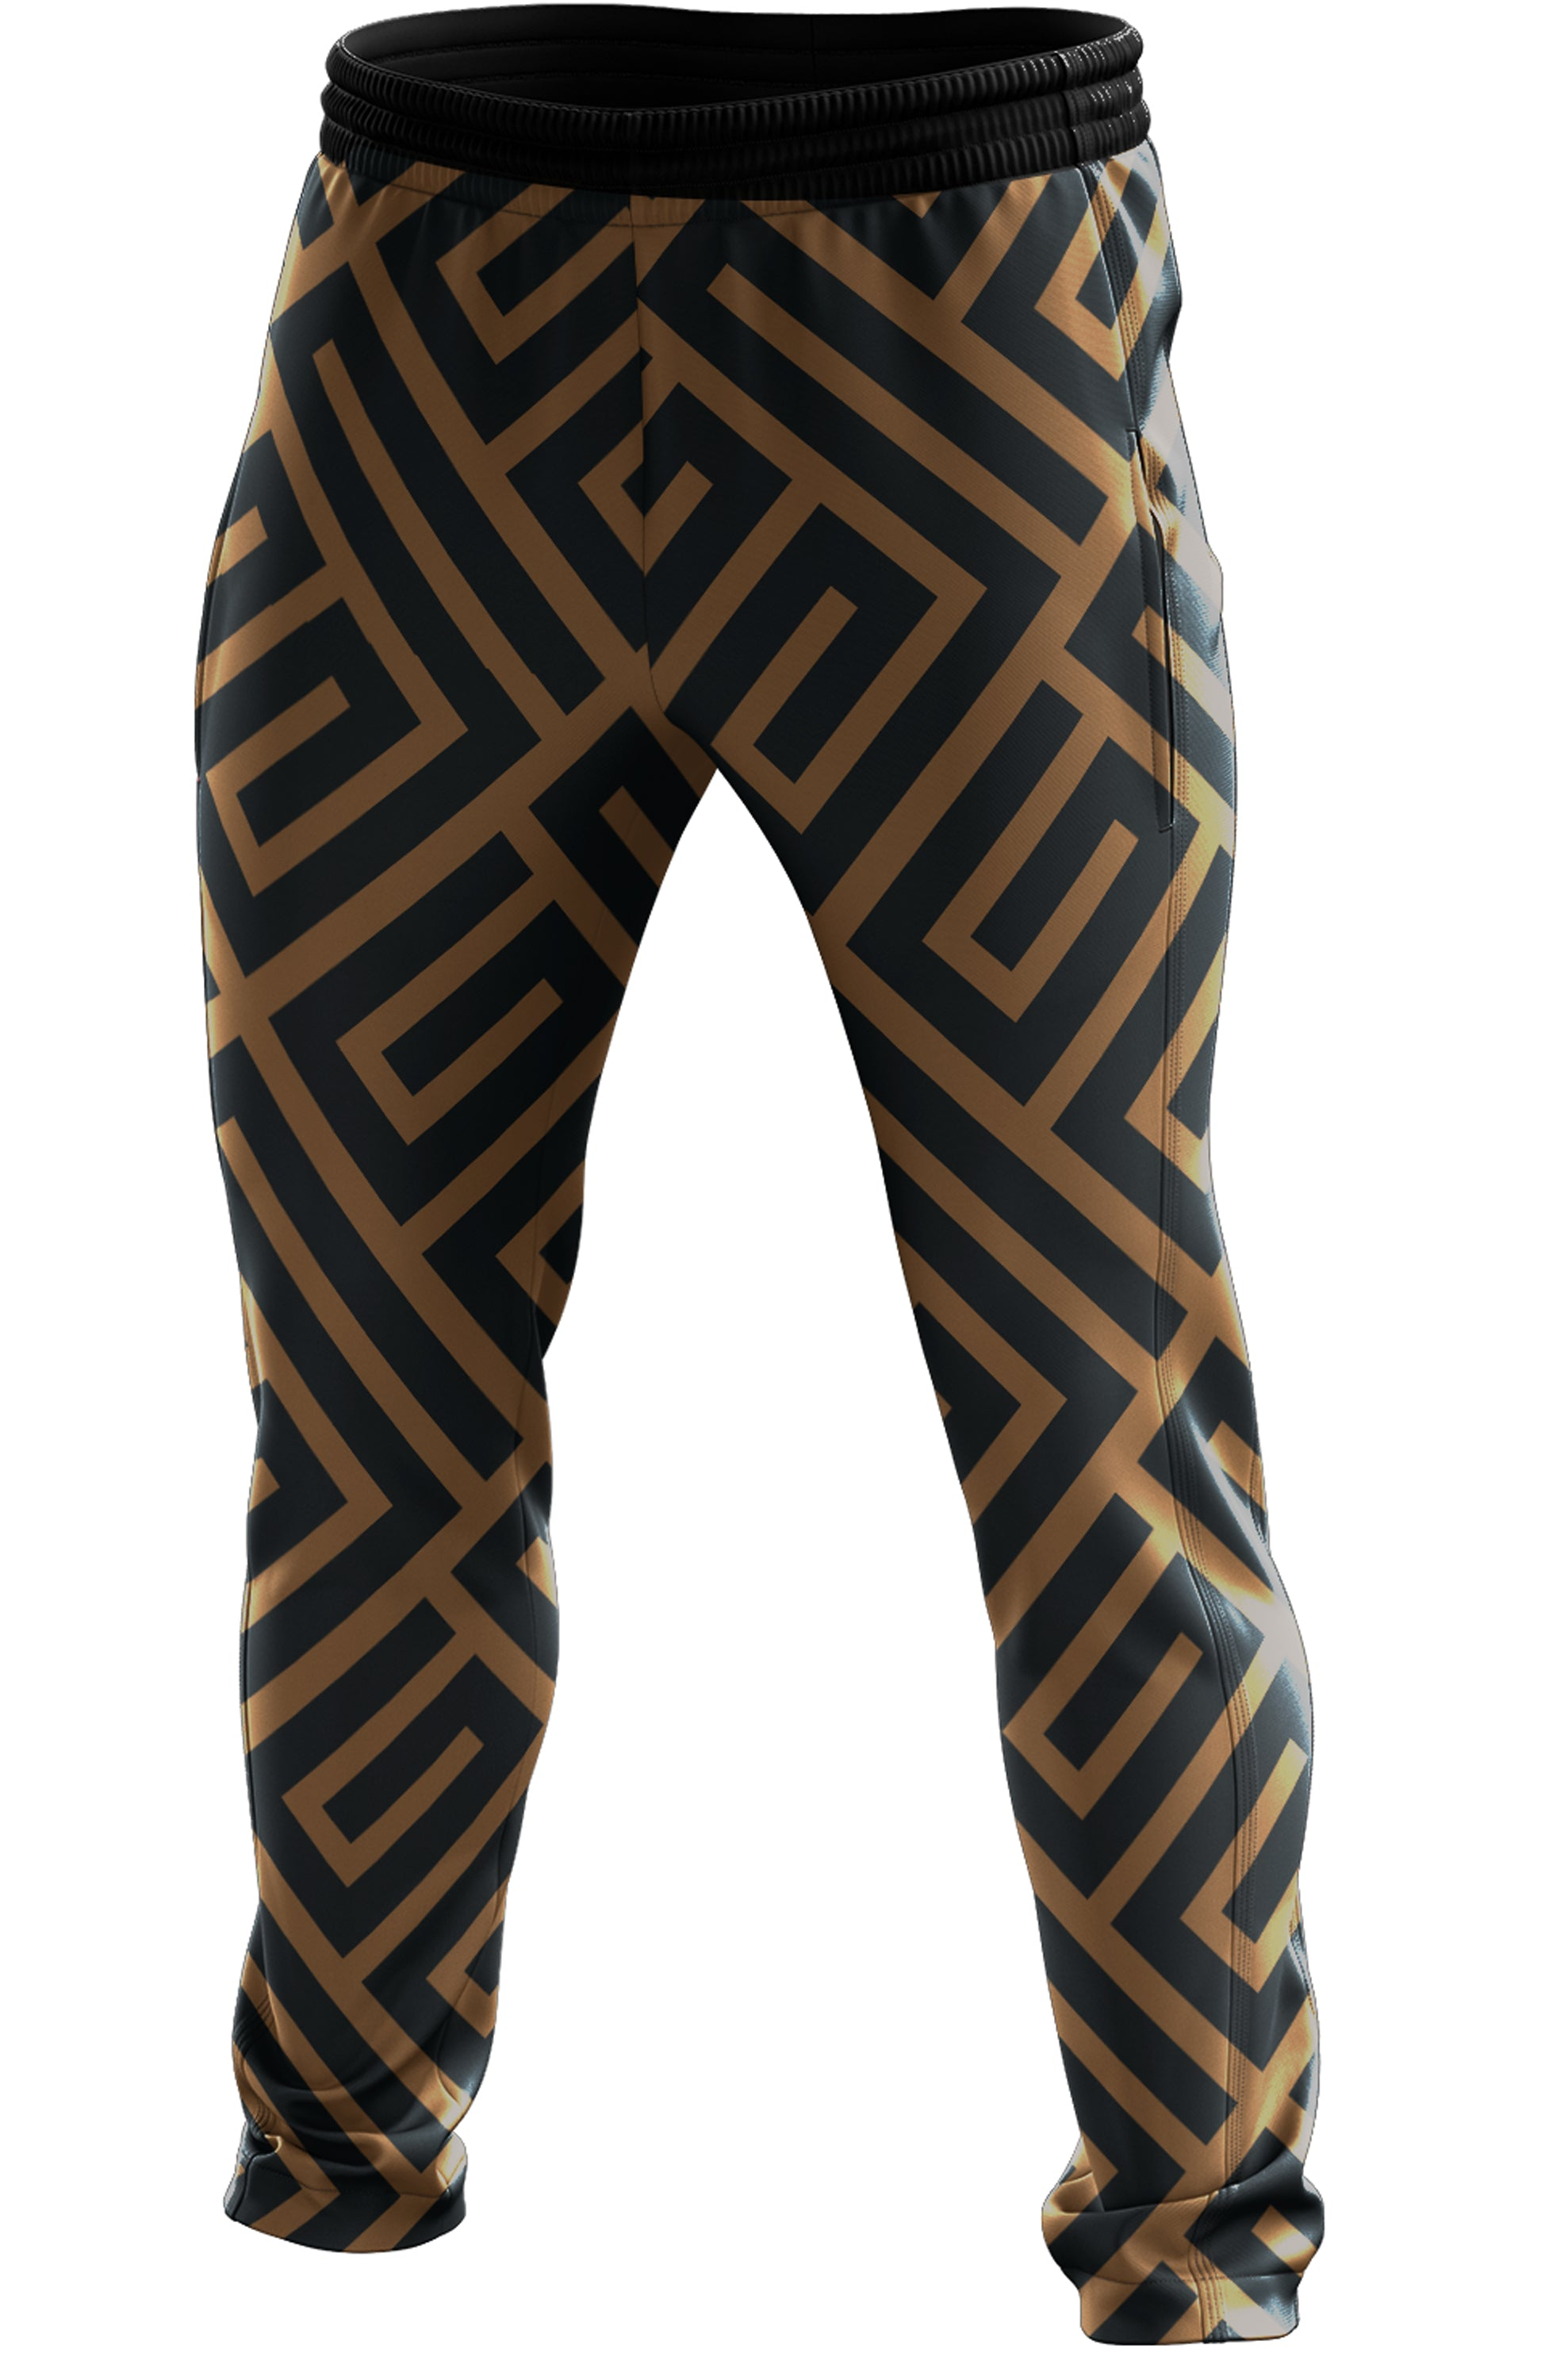 THE AVION TRACK PANTS II